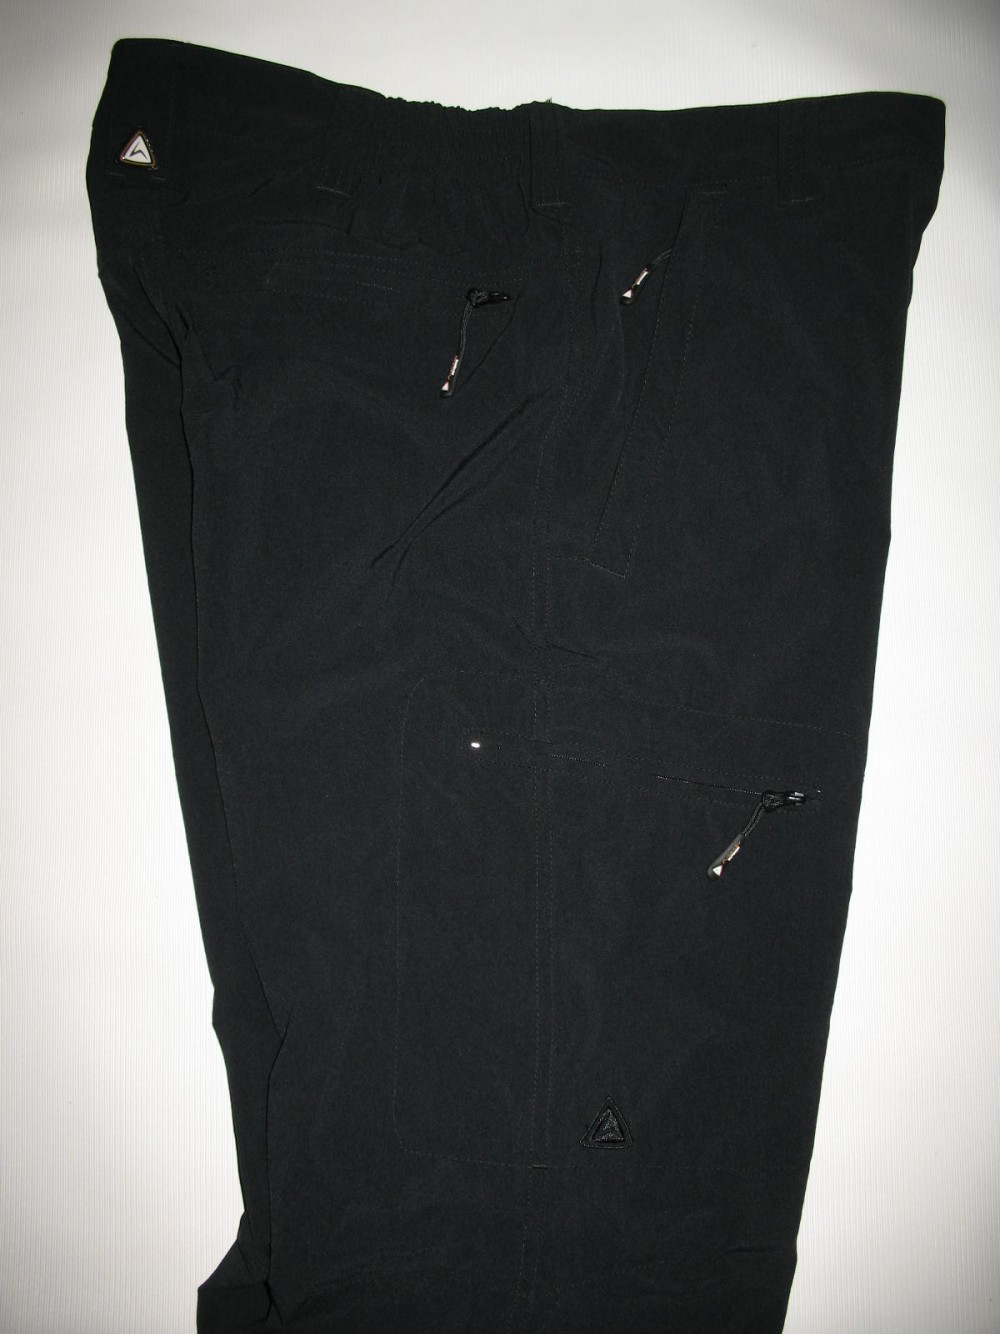 Штаны HICKORY outdoor pants (размер L) - 6